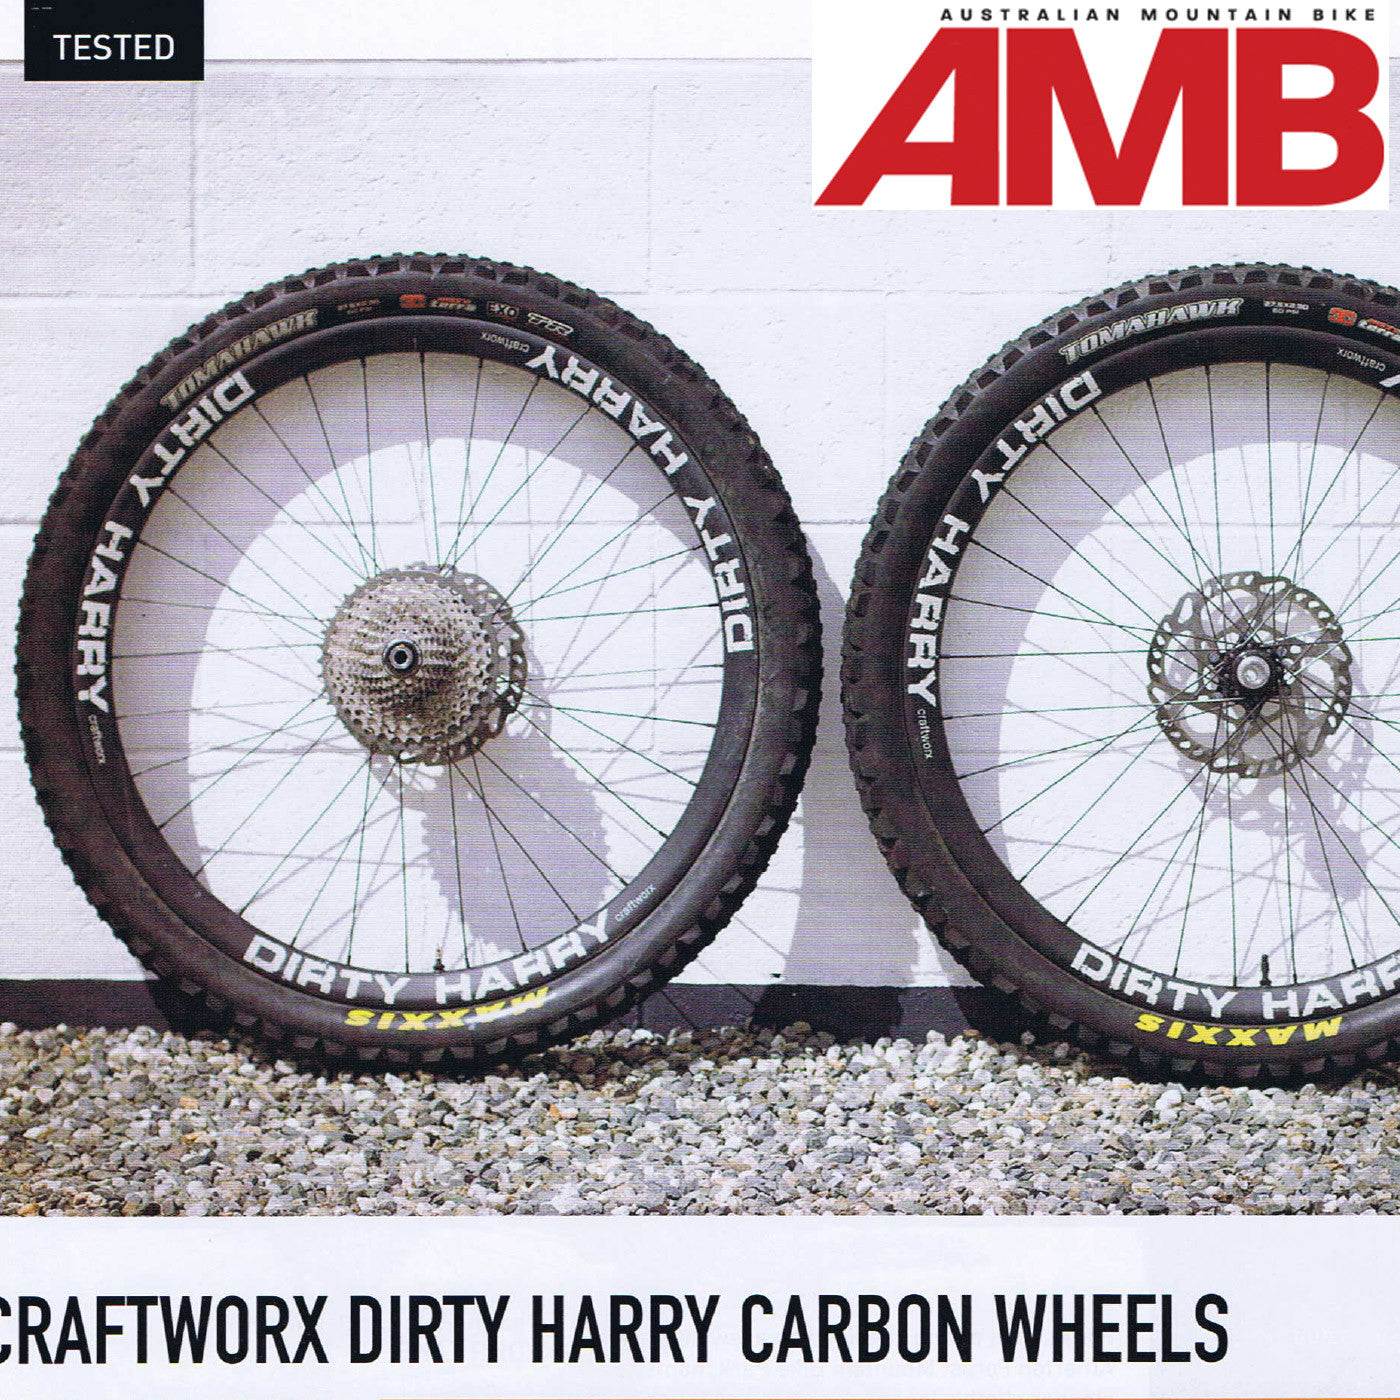 TESTED: Dirty Harry Carbon Wheels